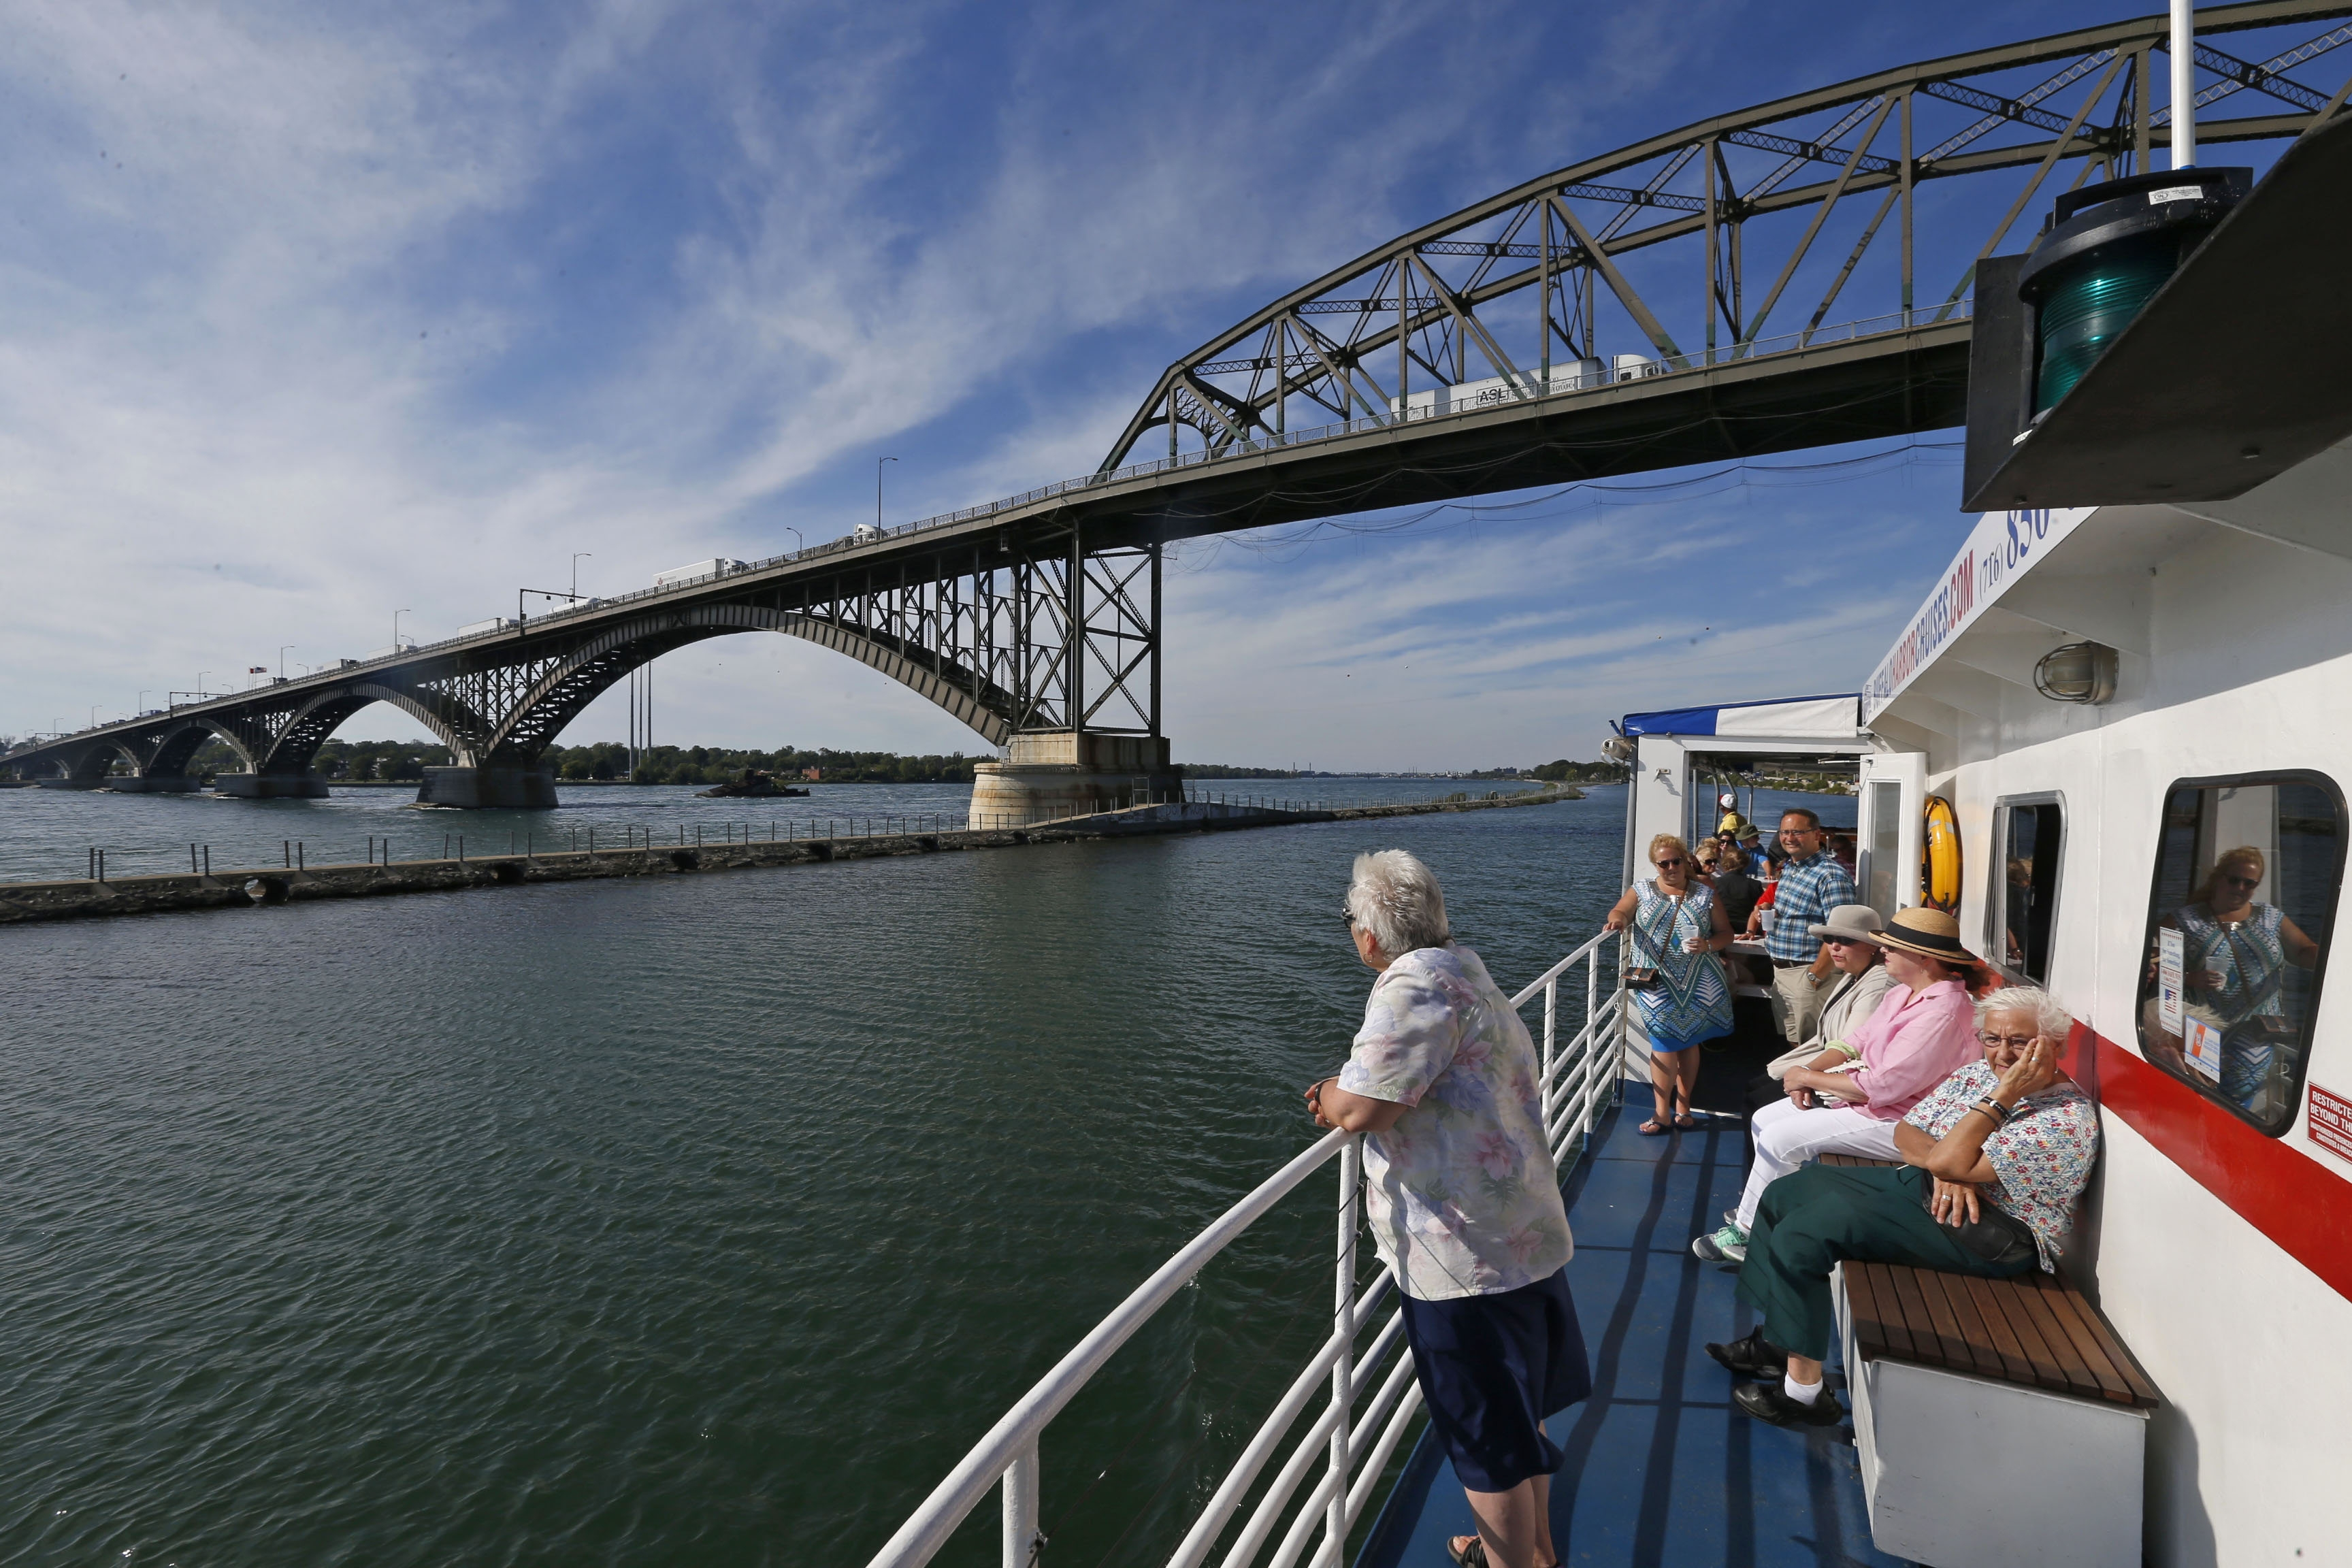 Aboard the Miss Buffalo: The Peace Bridge soars majestically overhead as the Miss Buffalo, piloted by Capt. Tom Woodrow, plies the Niagara River waters. The ship leaves the Erie Basin Marina for a two-hour excursion, which includes a trip through the Black Rock Lock on the way back.